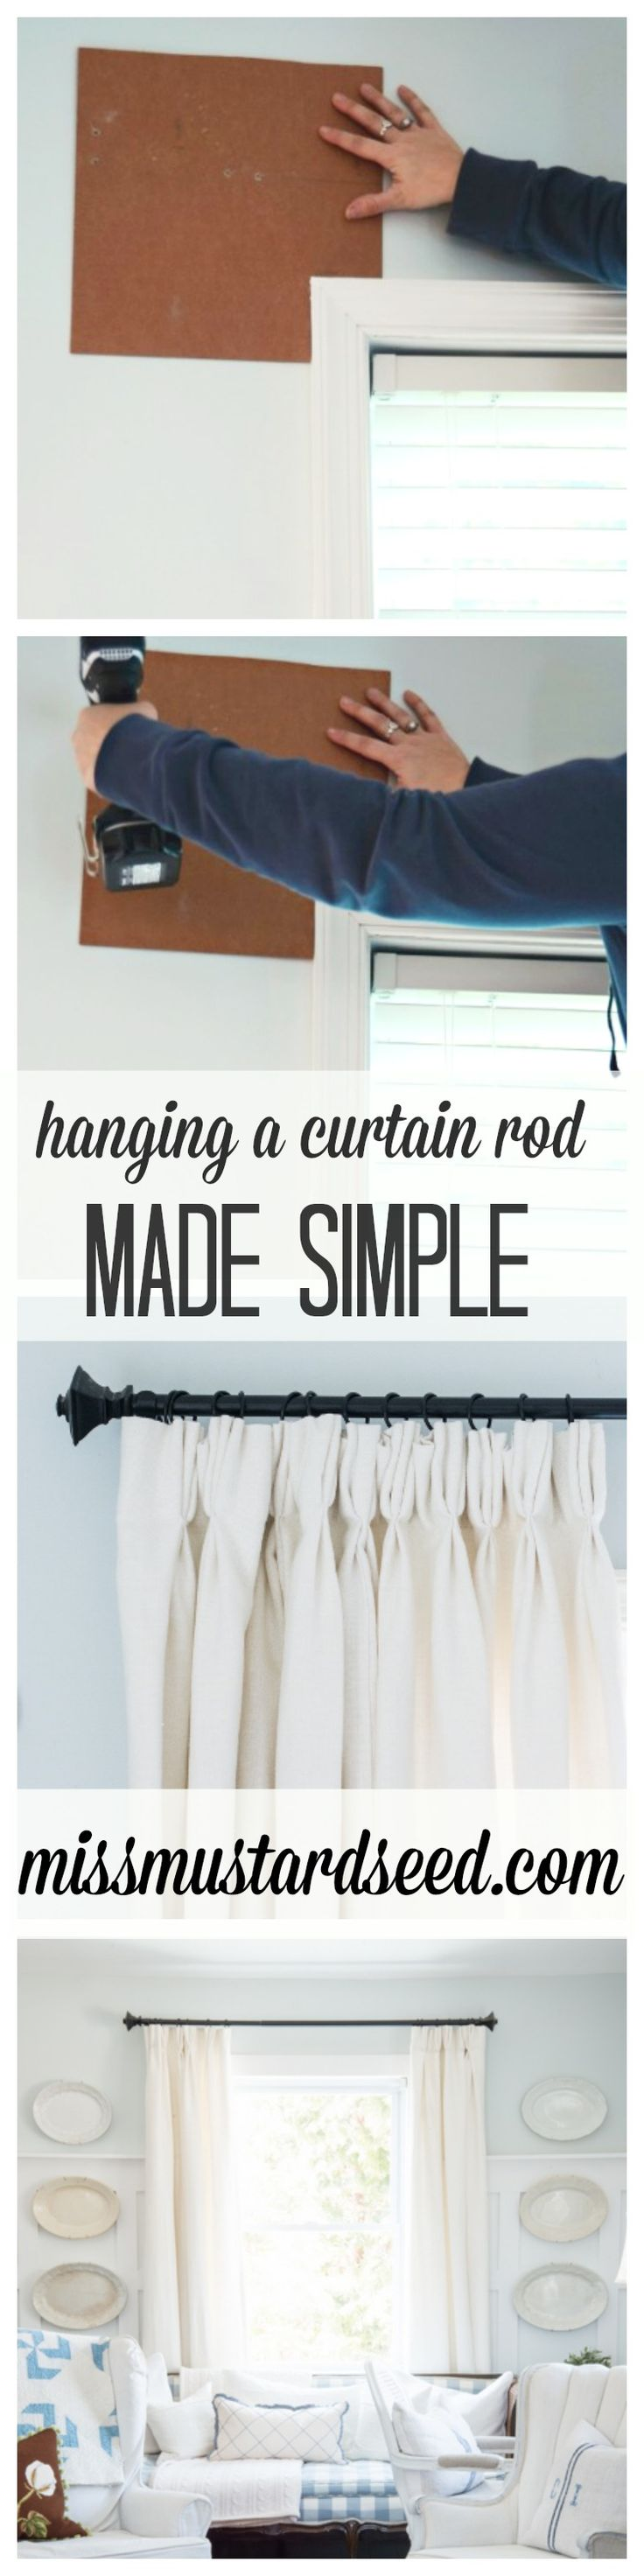 hanging a curtain rod made simple.jpg